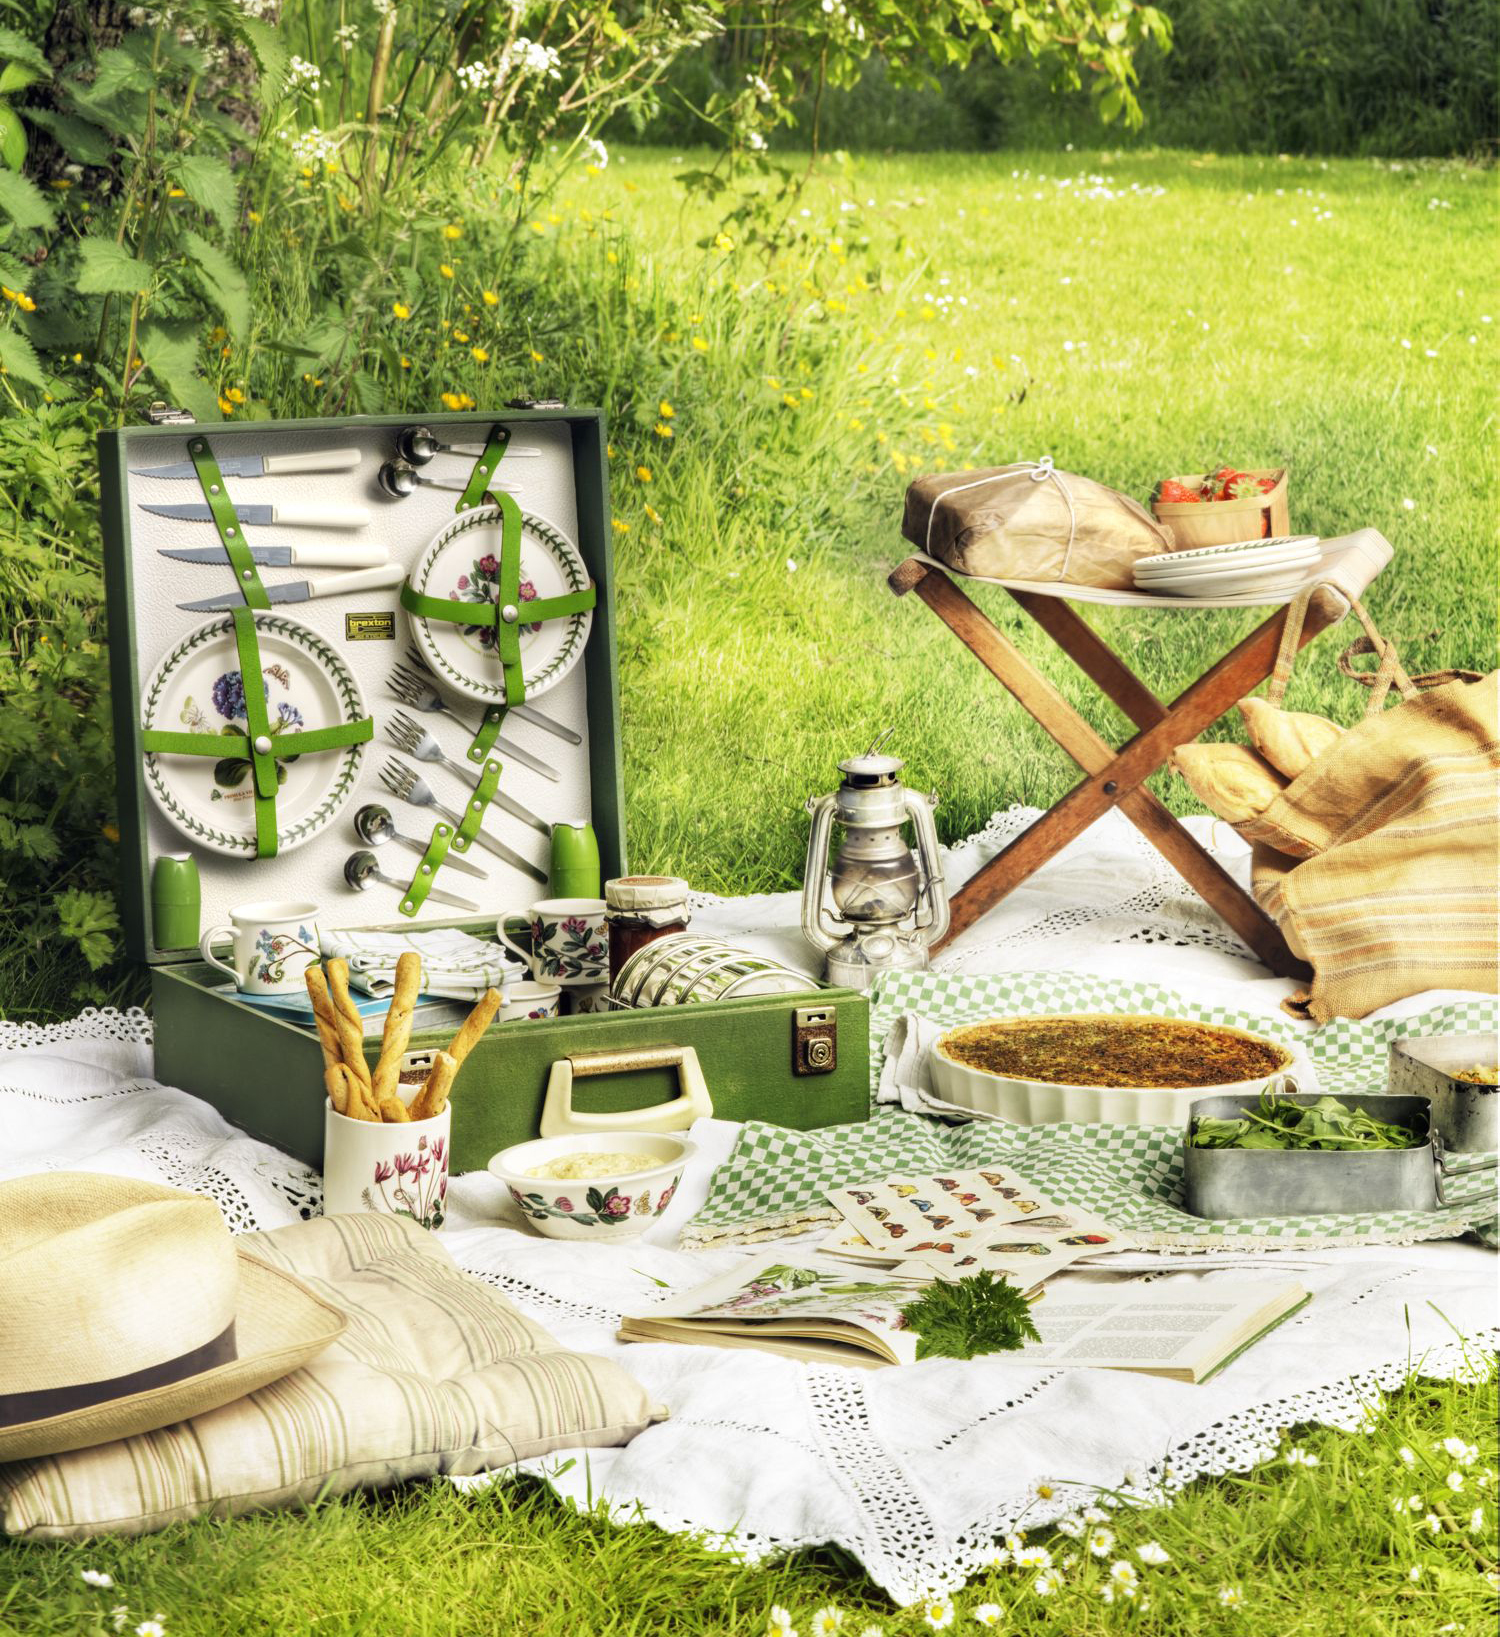 Portmeirion Botanic Garden tableware in picnic setting